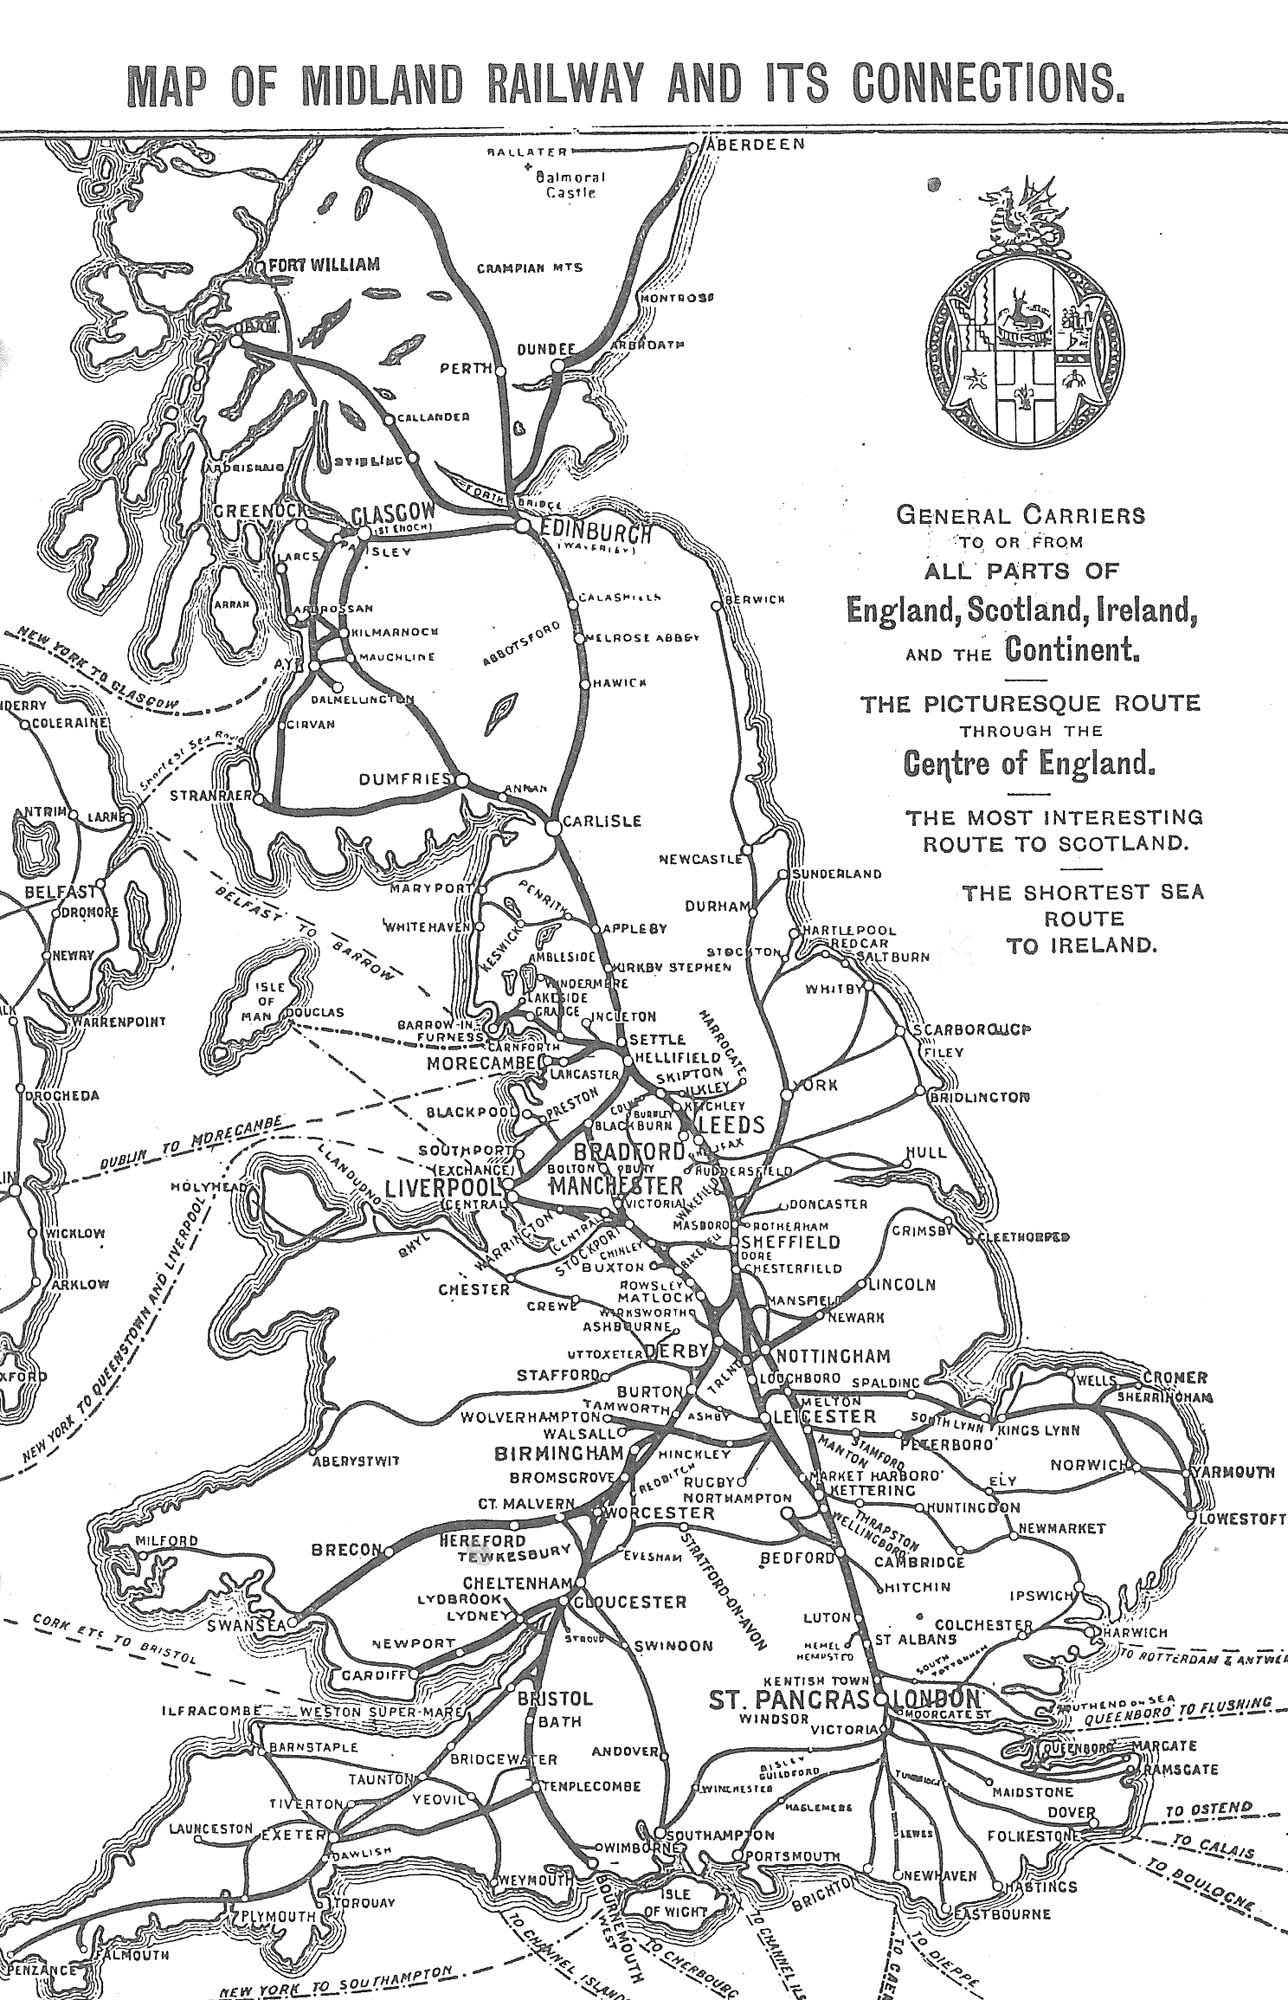 Map showing the Midland Railway connections, 1897 -